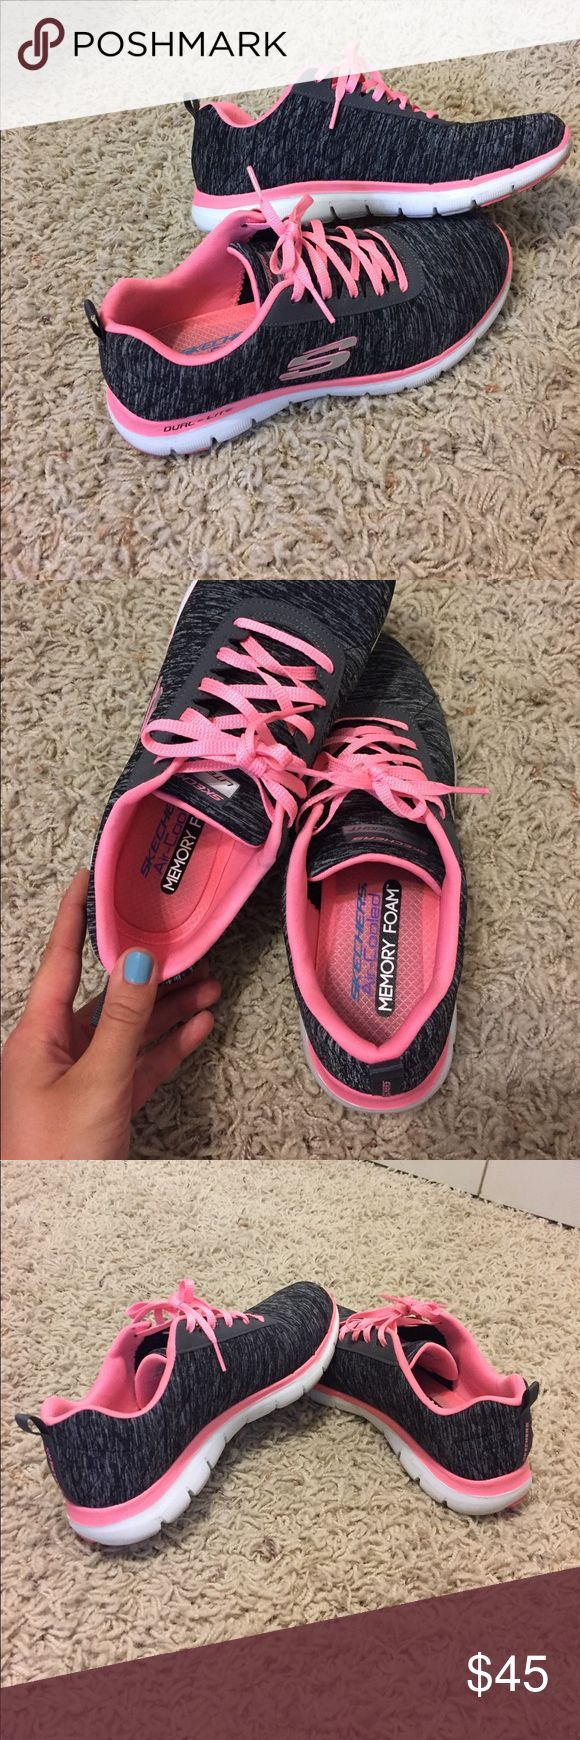 ❗️b&w/pink tennis shoes ❗️ barely worn skechers tennis shoes with memory foam sole. super comfortable & light. no problem with them, I just got a new pair of shoes and don't wear these anymore Skechers Shoes Athletic Shoes